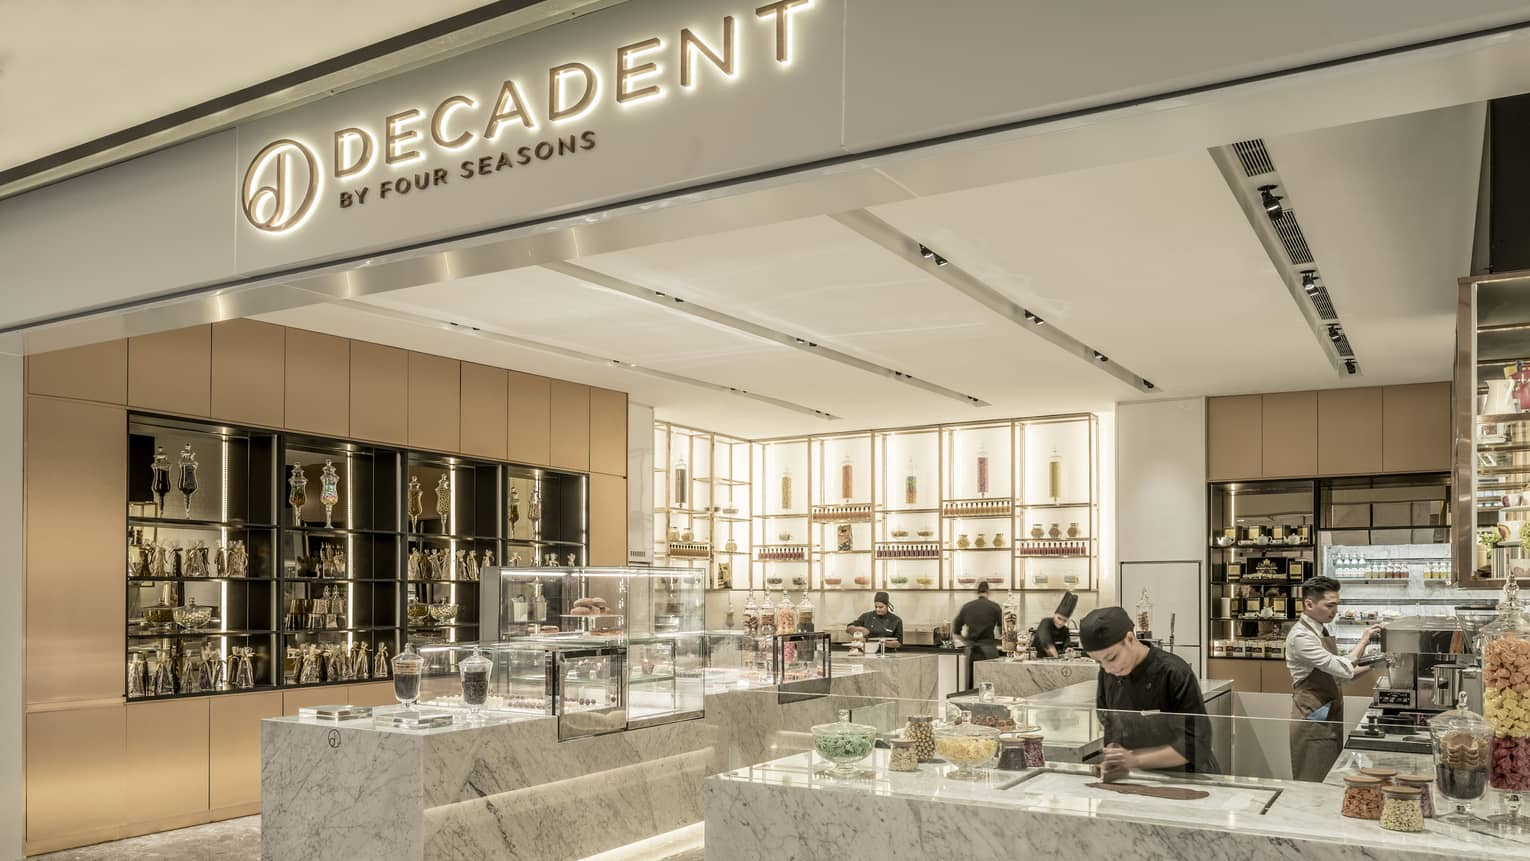 Decadent Mall Outlet, a sweets shop with a chef creating a dessert at the counter